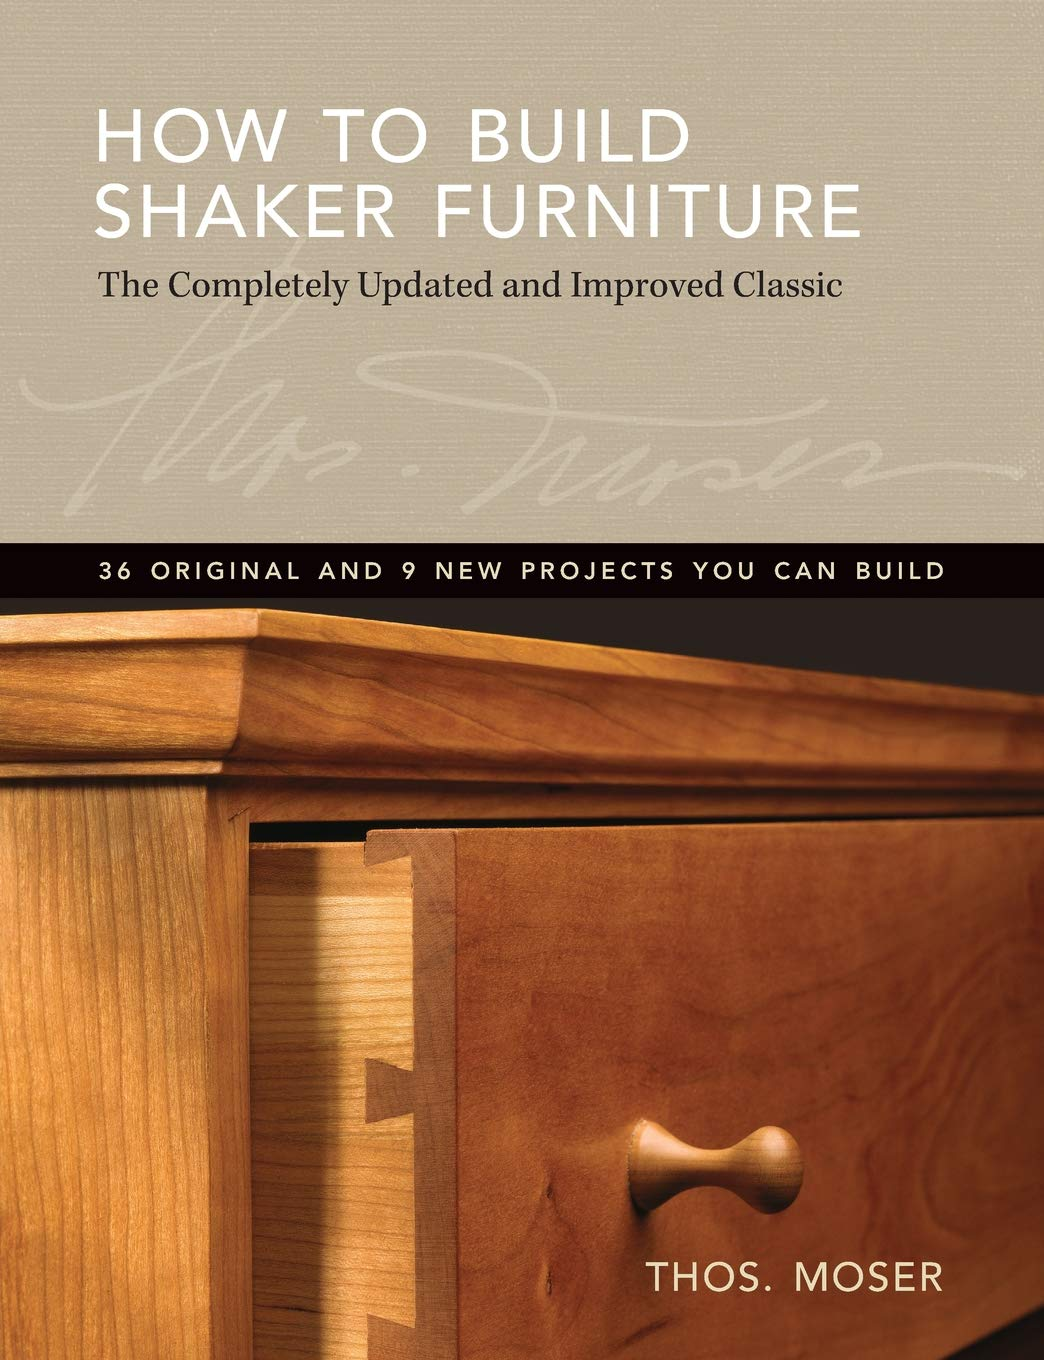 How To Build Shaker Furniture: The Complete Updated ...